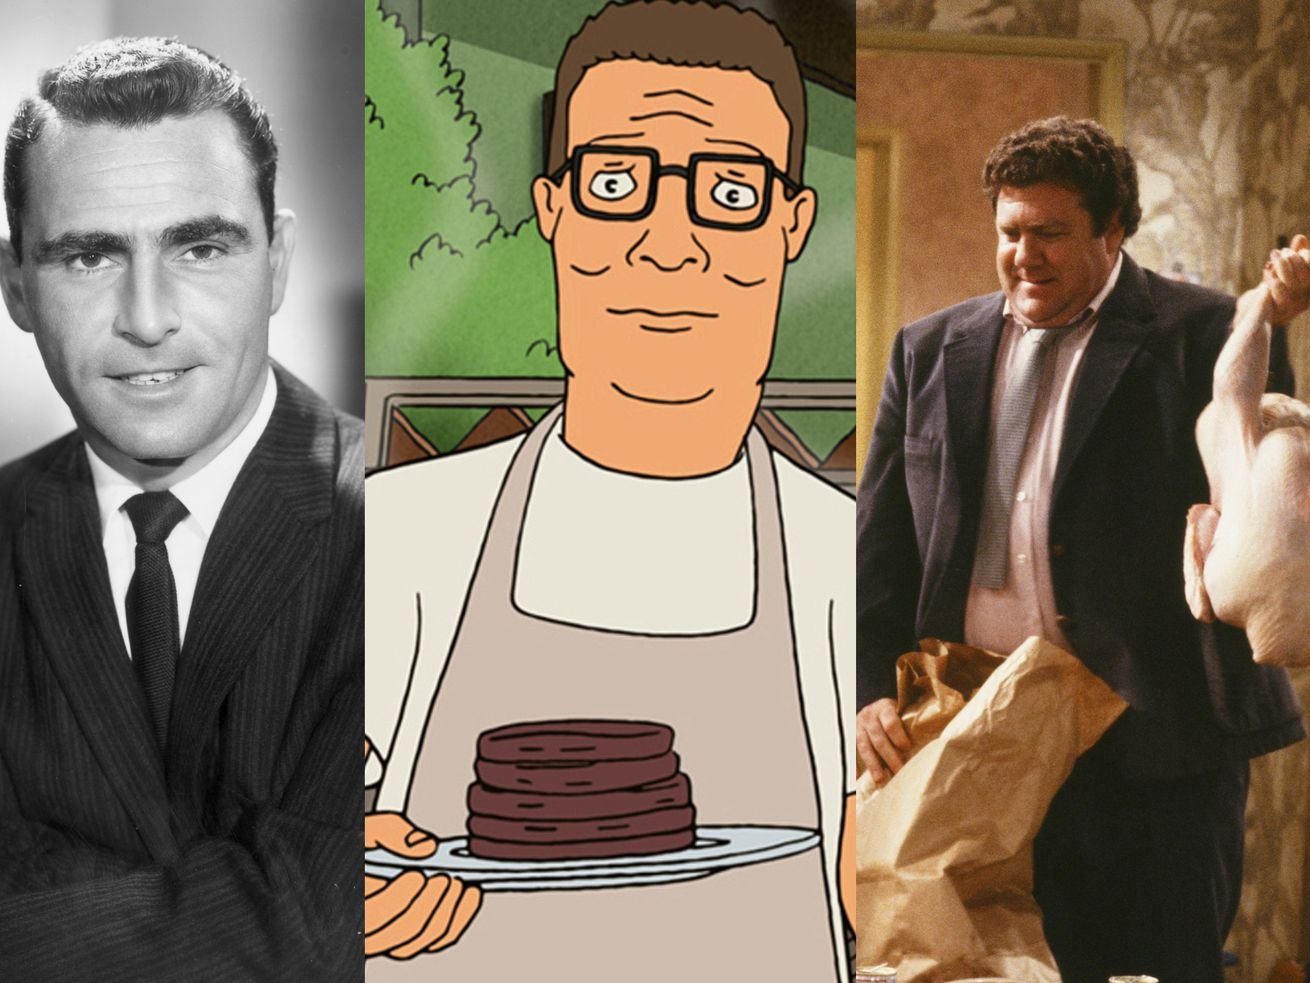 The Twilight Zone, King of the Hill, and Cheers are perfect shows to watch at any level of consciousness.